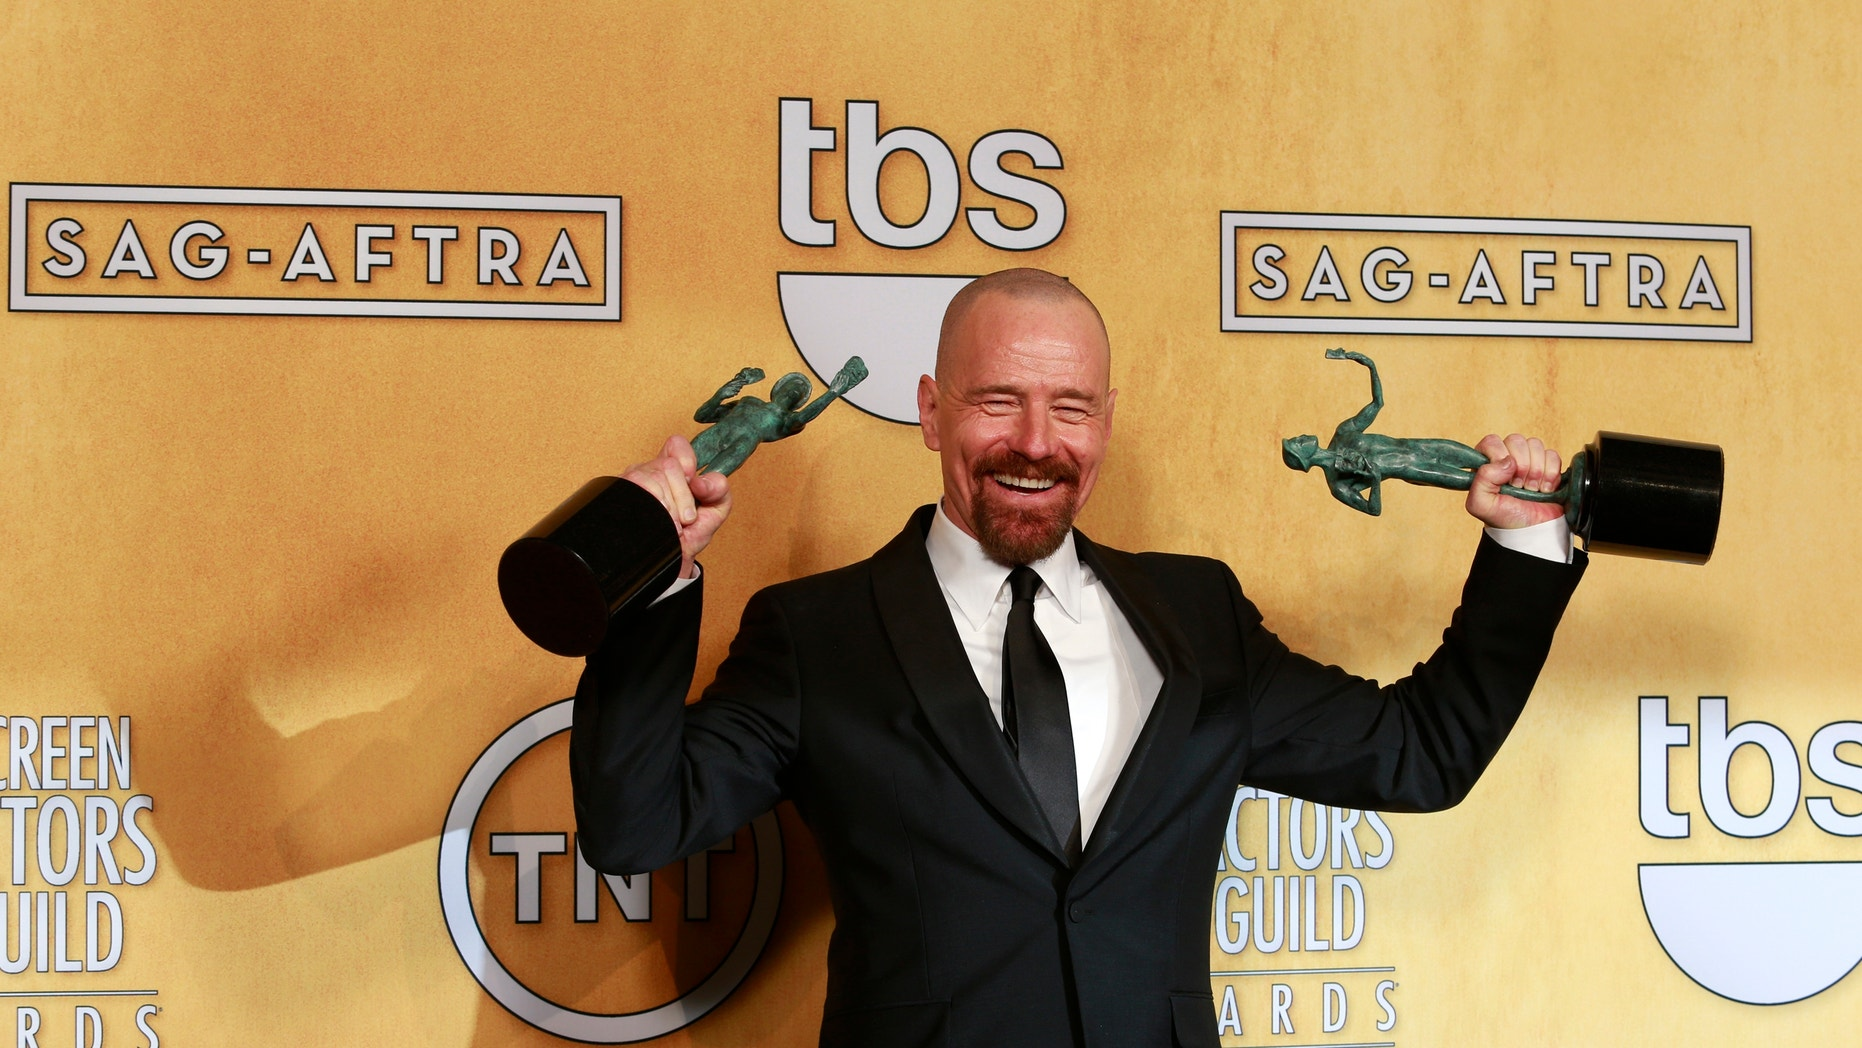 """Bryan Cranston poses backstage with his awards for outstanding male actor in a drama series for """"Breaking Bad"""" and for outstanding cast in a motion picture for """"Argo"""" at the 19th annual Screen Actors Guild Awards in Los Angeles, California January 27, 2013."""